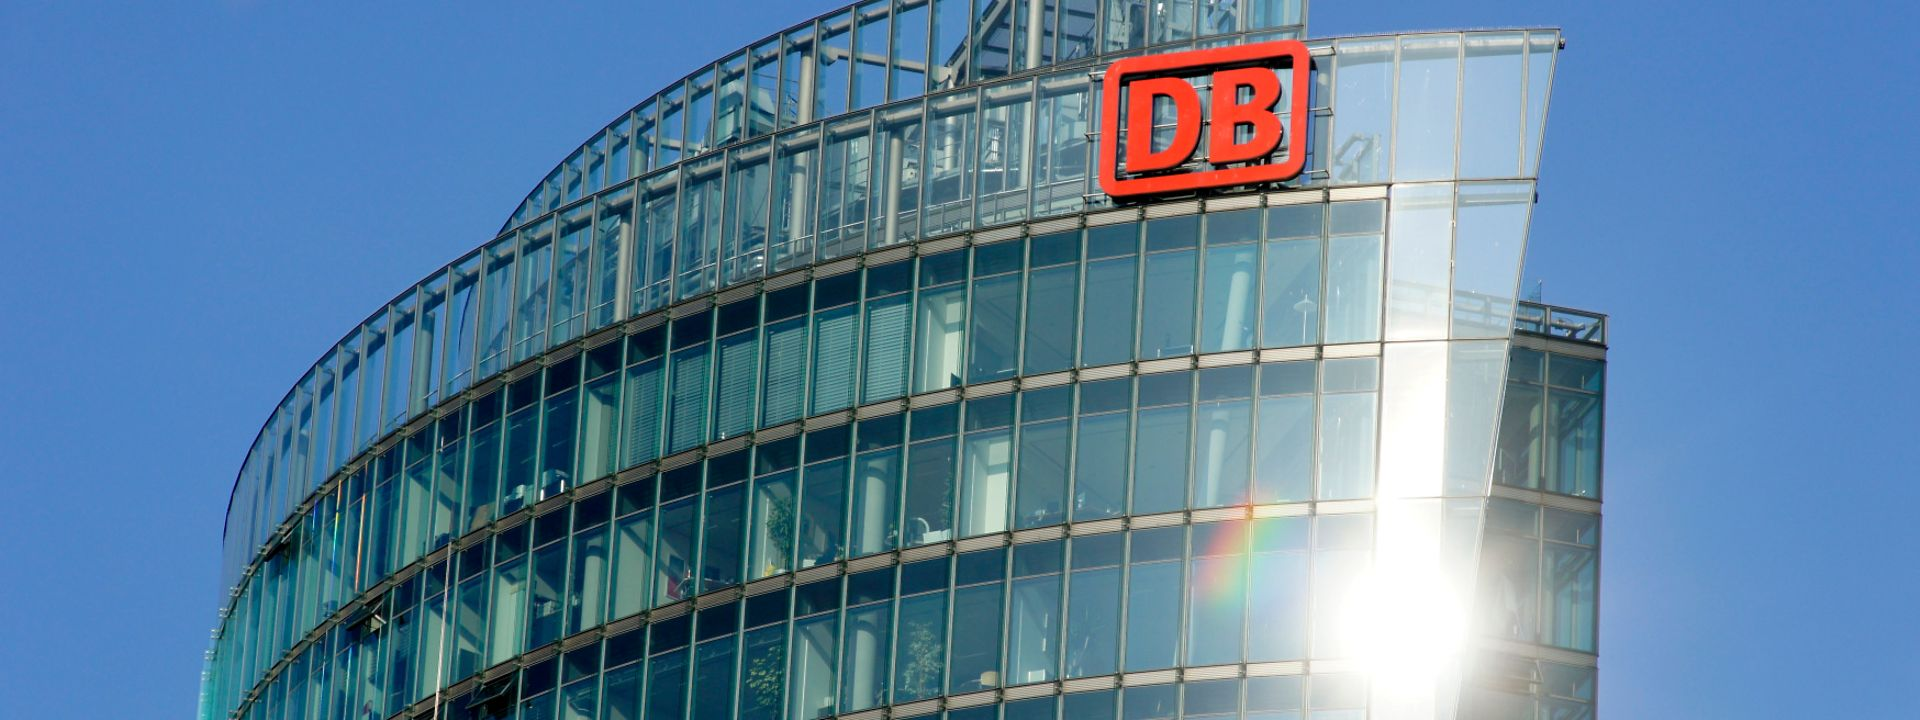 Presseinformationen des DB Konzerns